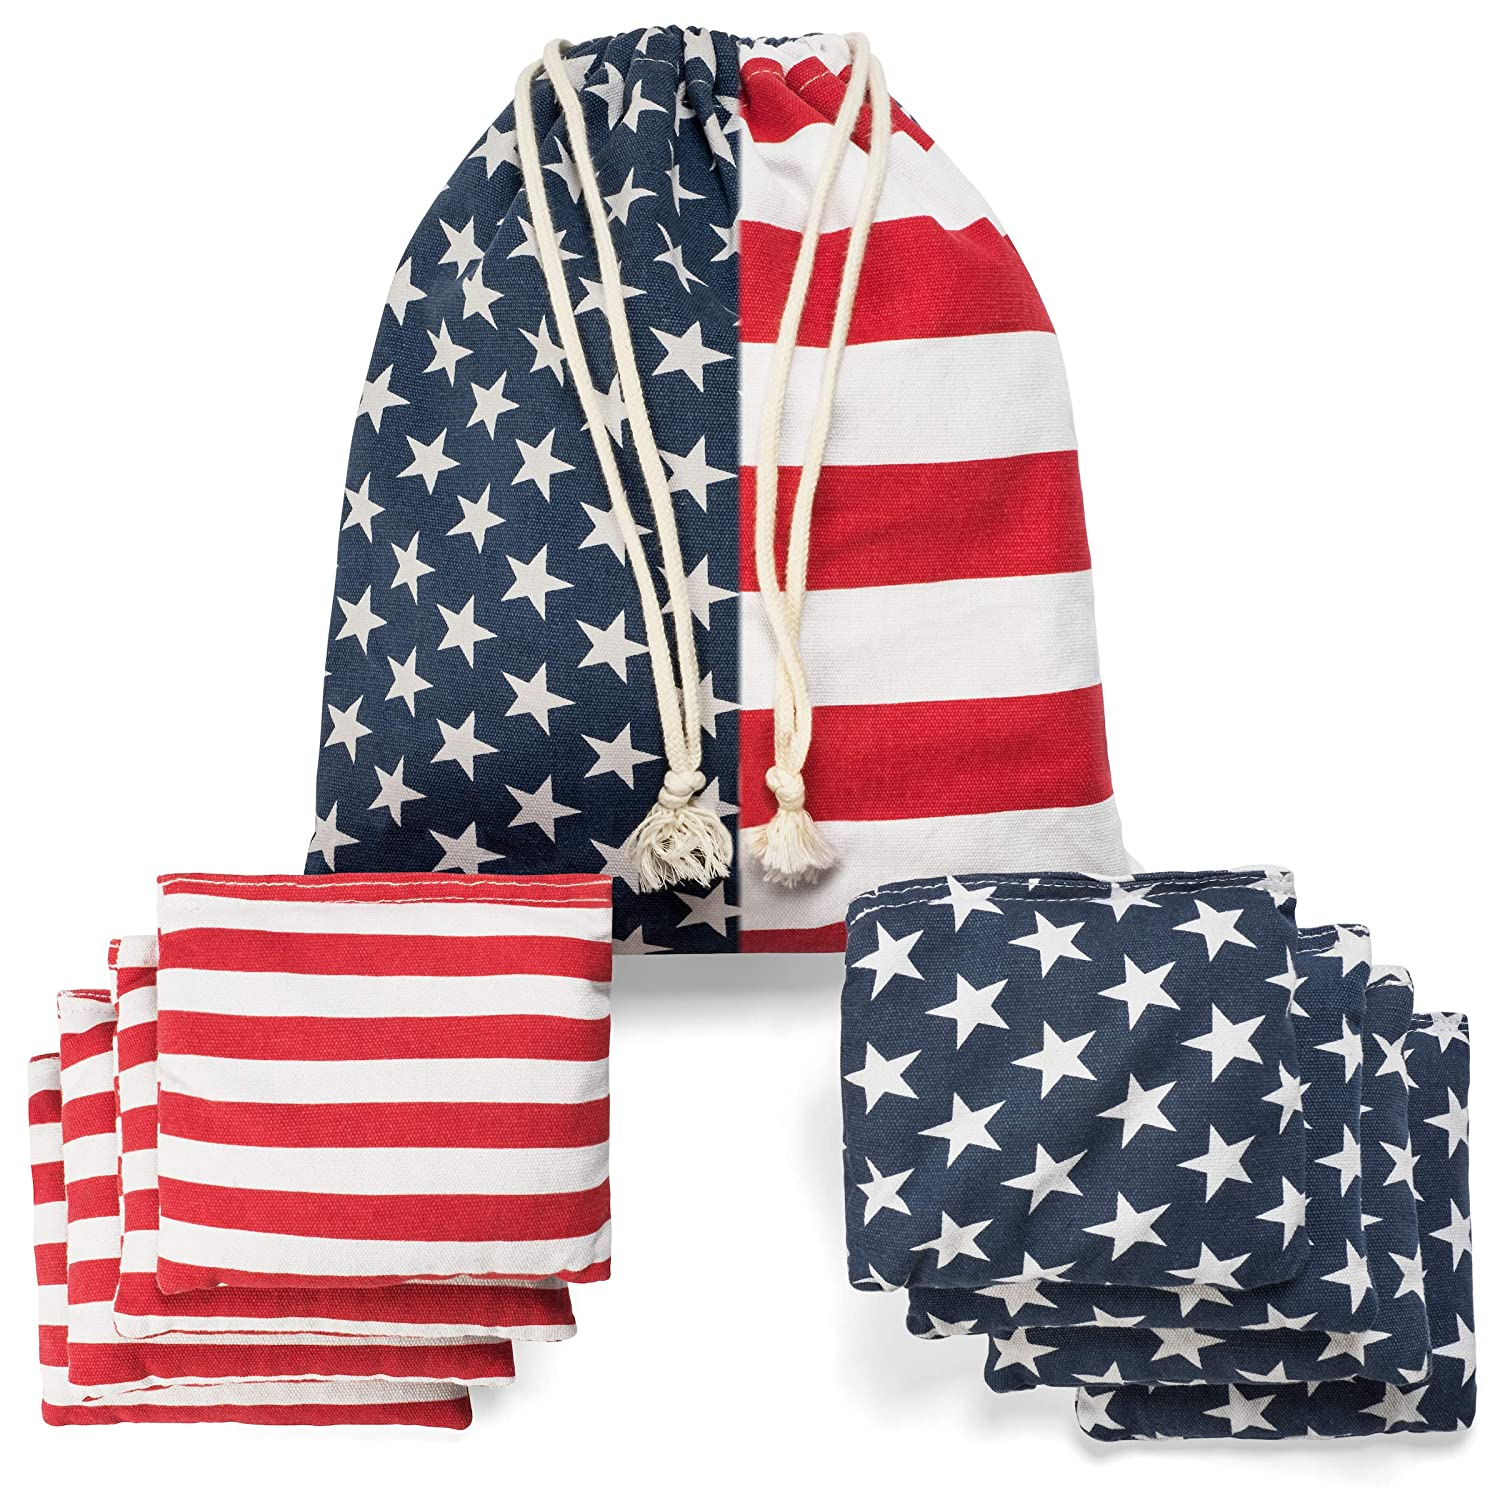 TOYSHARING Cornhole Bags Weather Resistant Cornhole Bean Bags Duckcloth Canvas Corn Filled Double Stitched American Flag Regulation Corn Hole Bean Bags with Portable Tote Bag